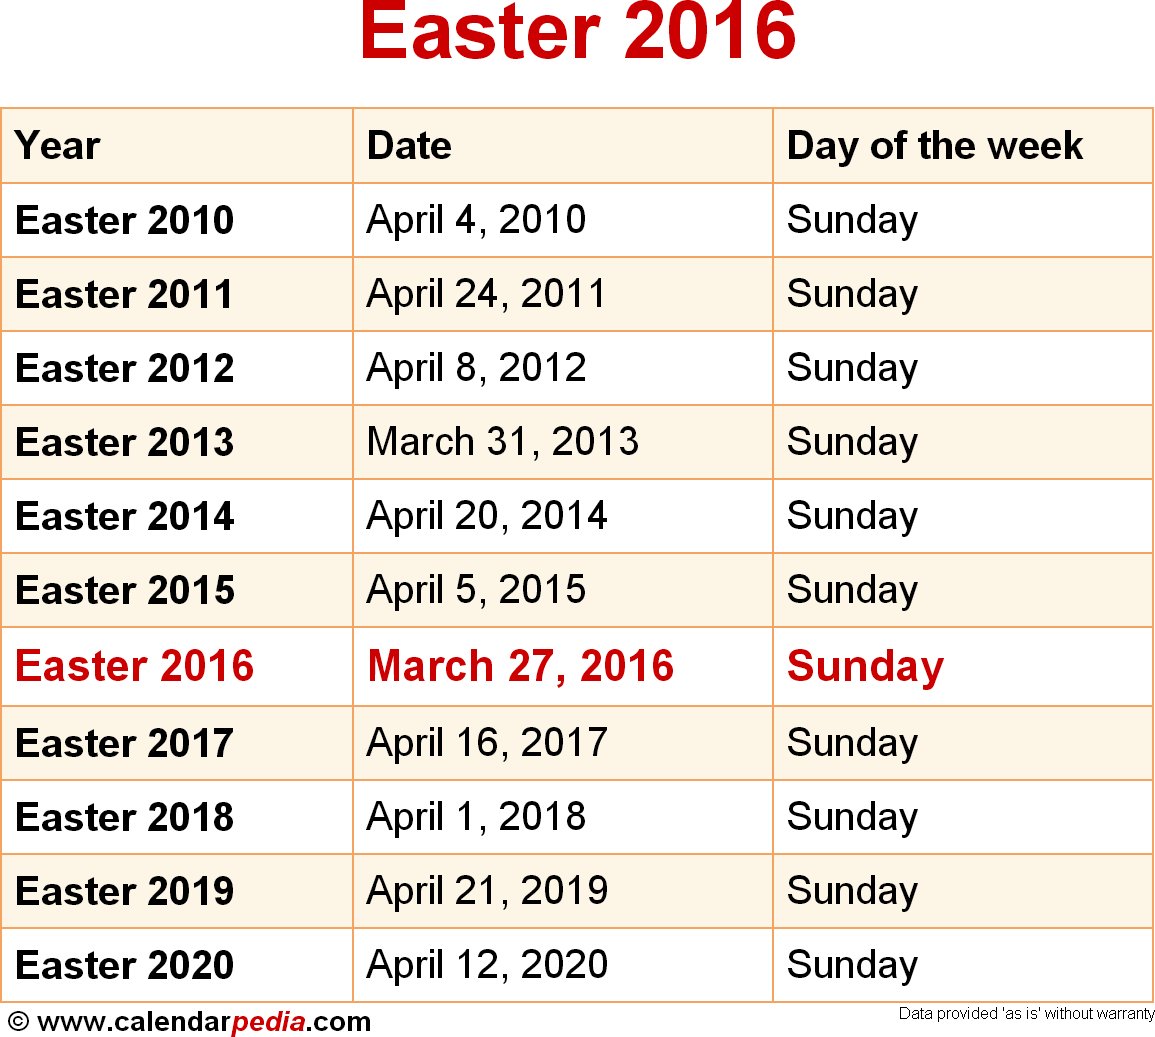 5225the date of easter sunday can fall between 22 march and 25 april